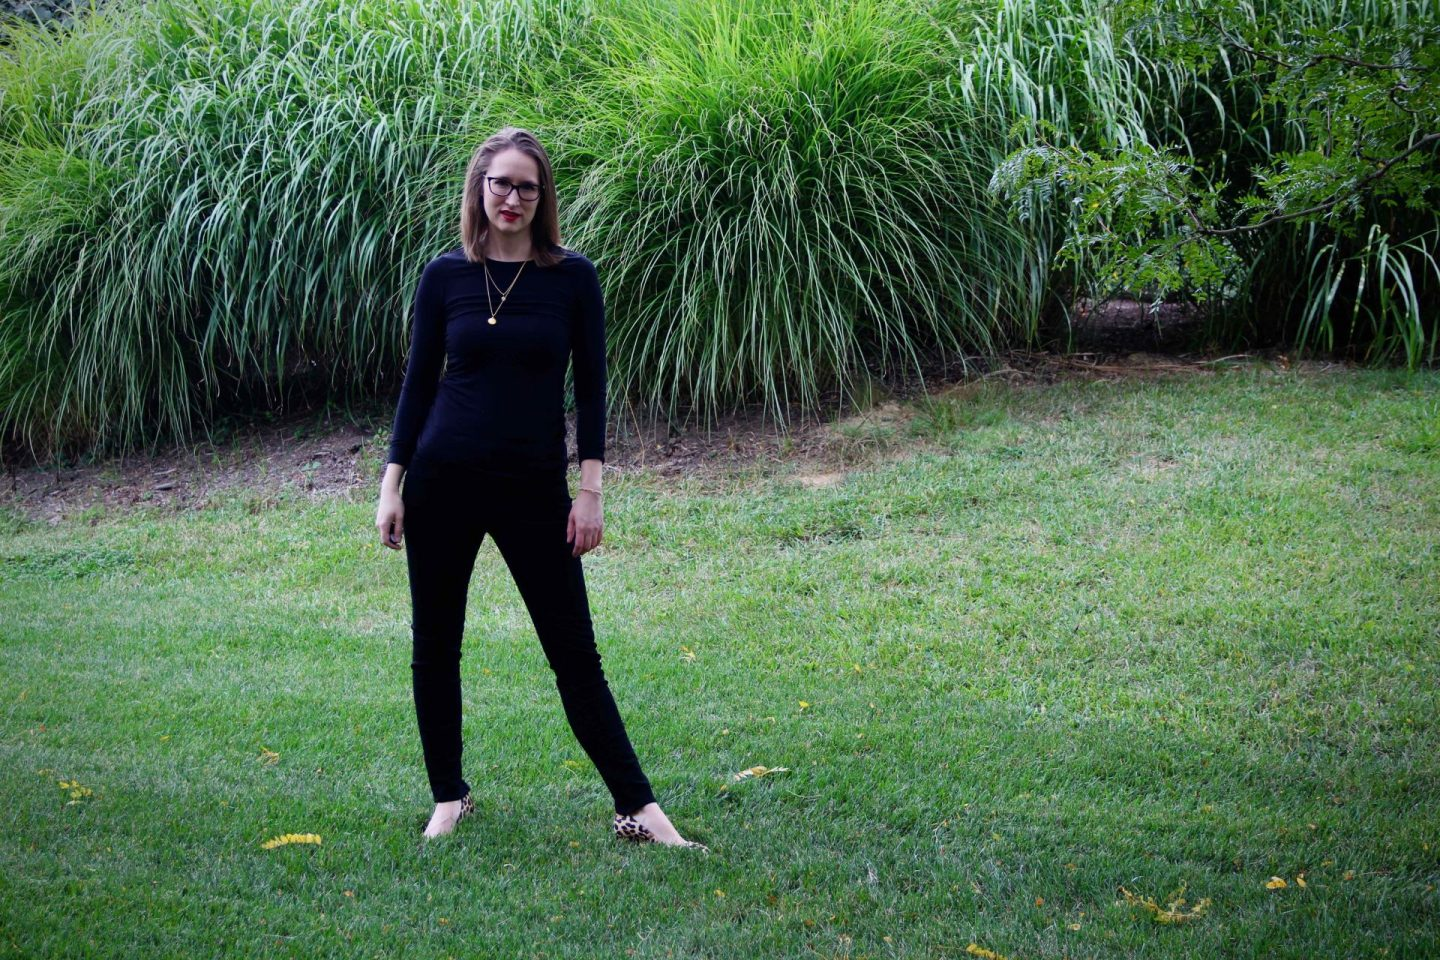 Fall Capsule Wardrobe   Standard All Balck with Dean Davidson Layered Necklace   The Spectacular Adventurer